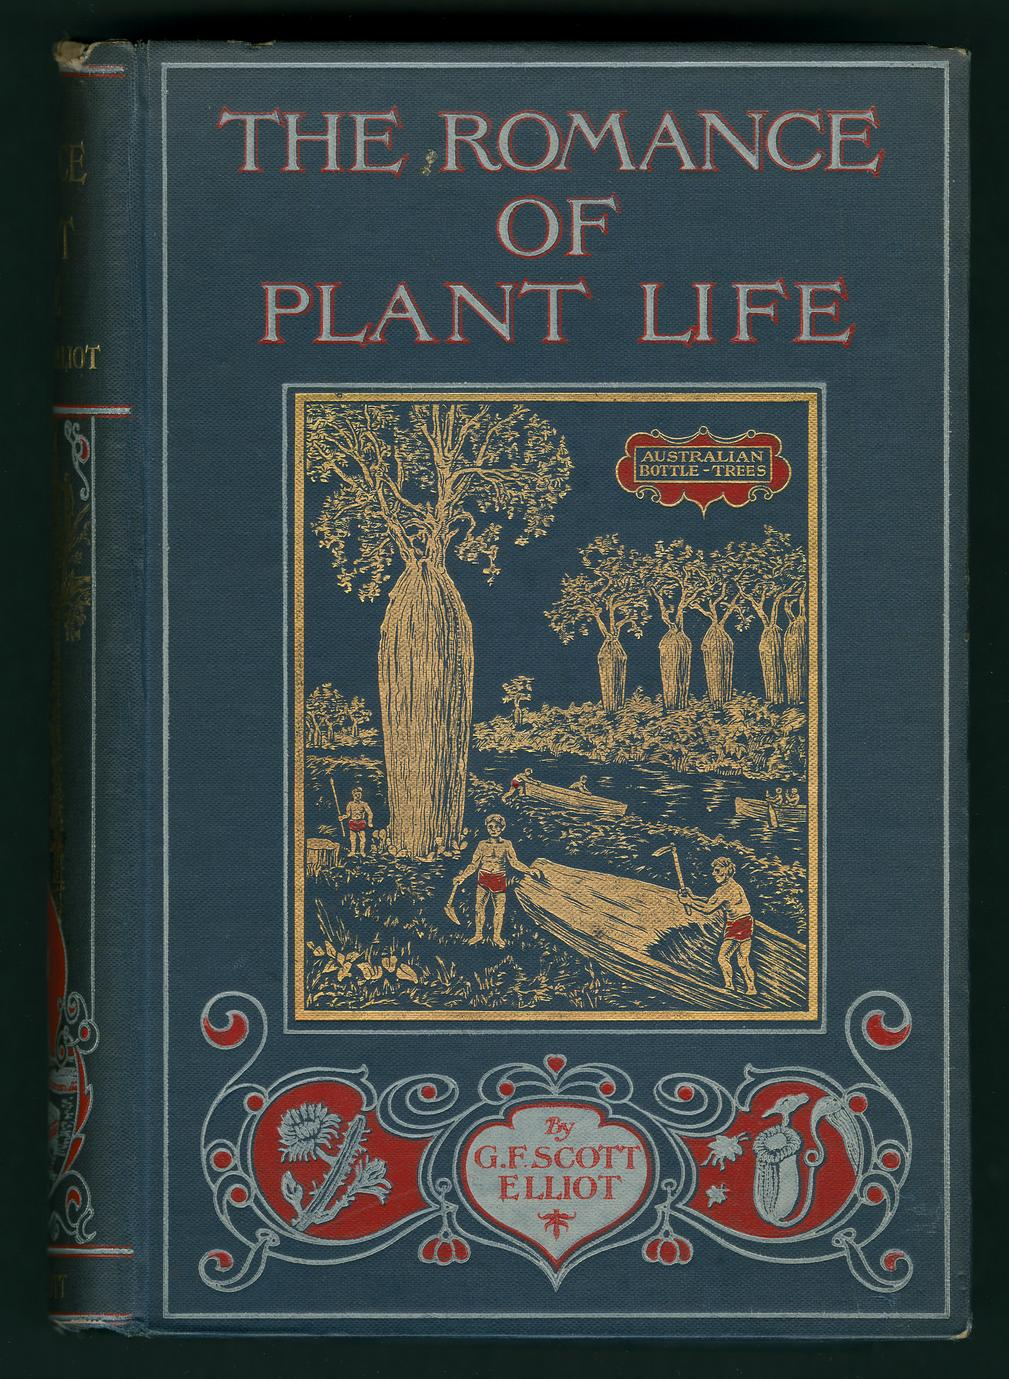 The romance of plant life : interesting descriptions of the strange and curious in the plant world (1 of 2)